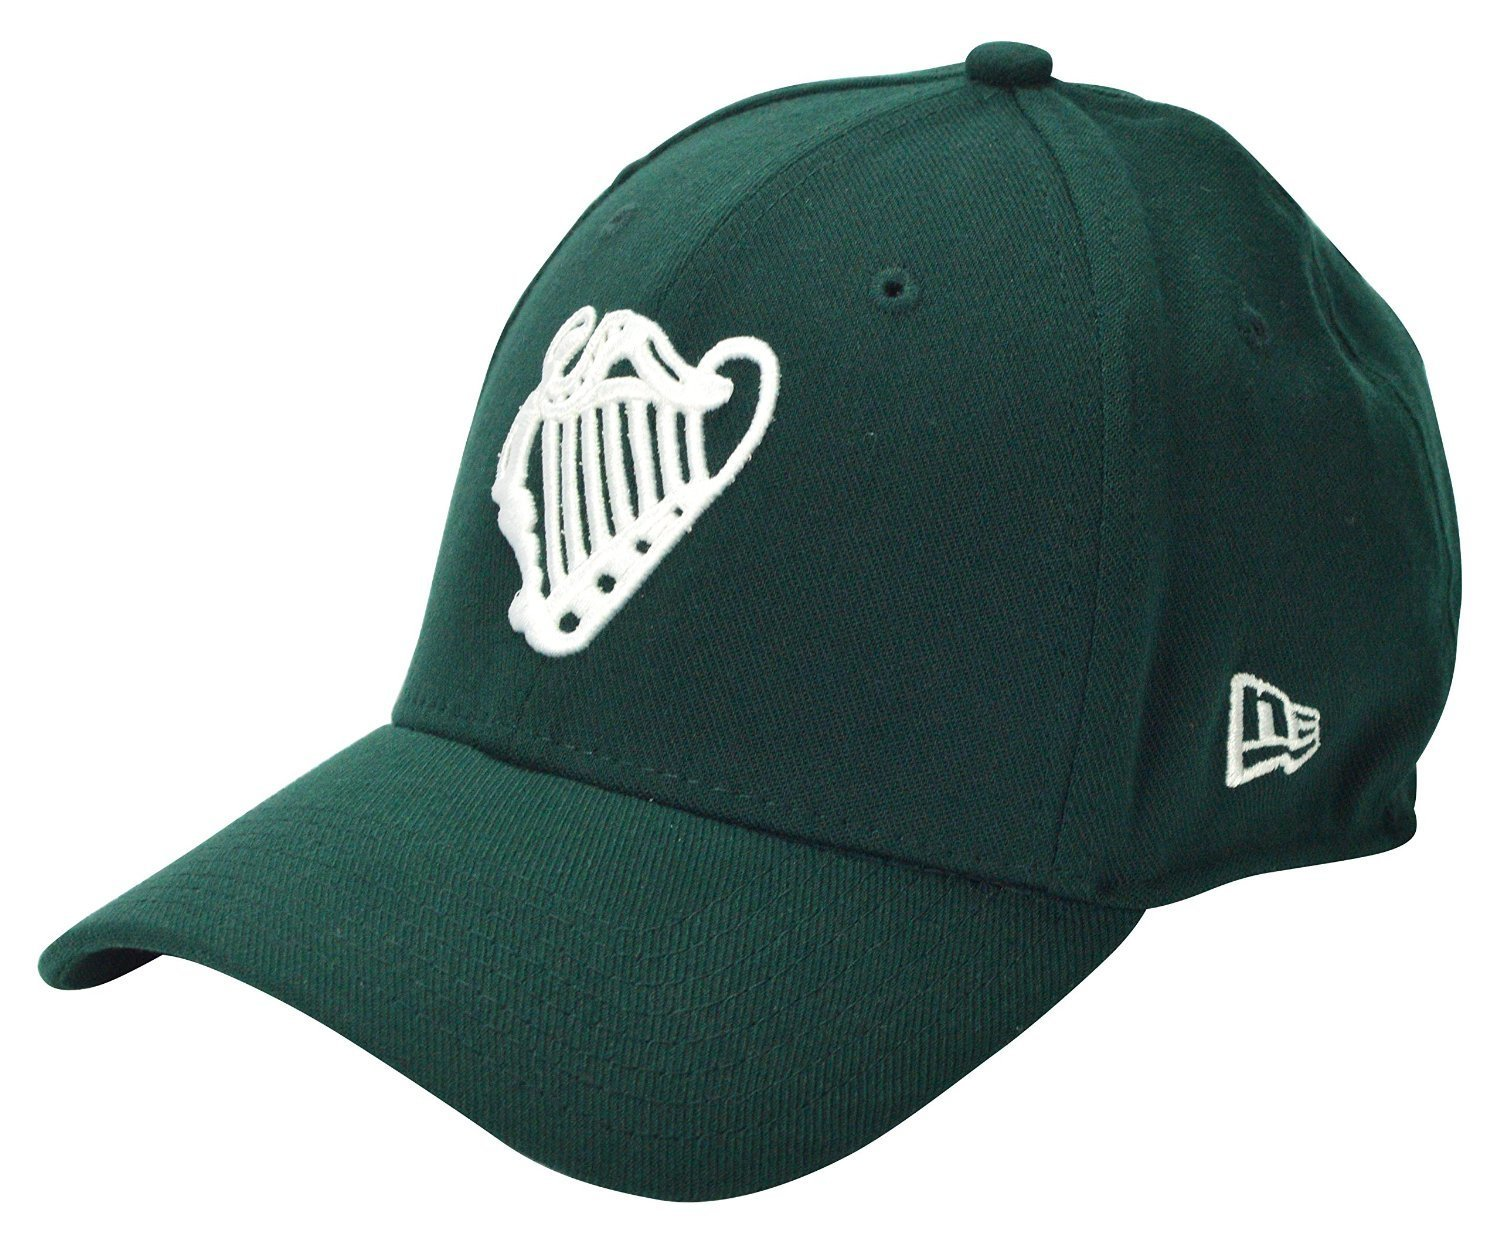 Irish National Baseball Team Official Embroidered Green New Era 39Thirty Stretch Fit Cap IRLCAP003